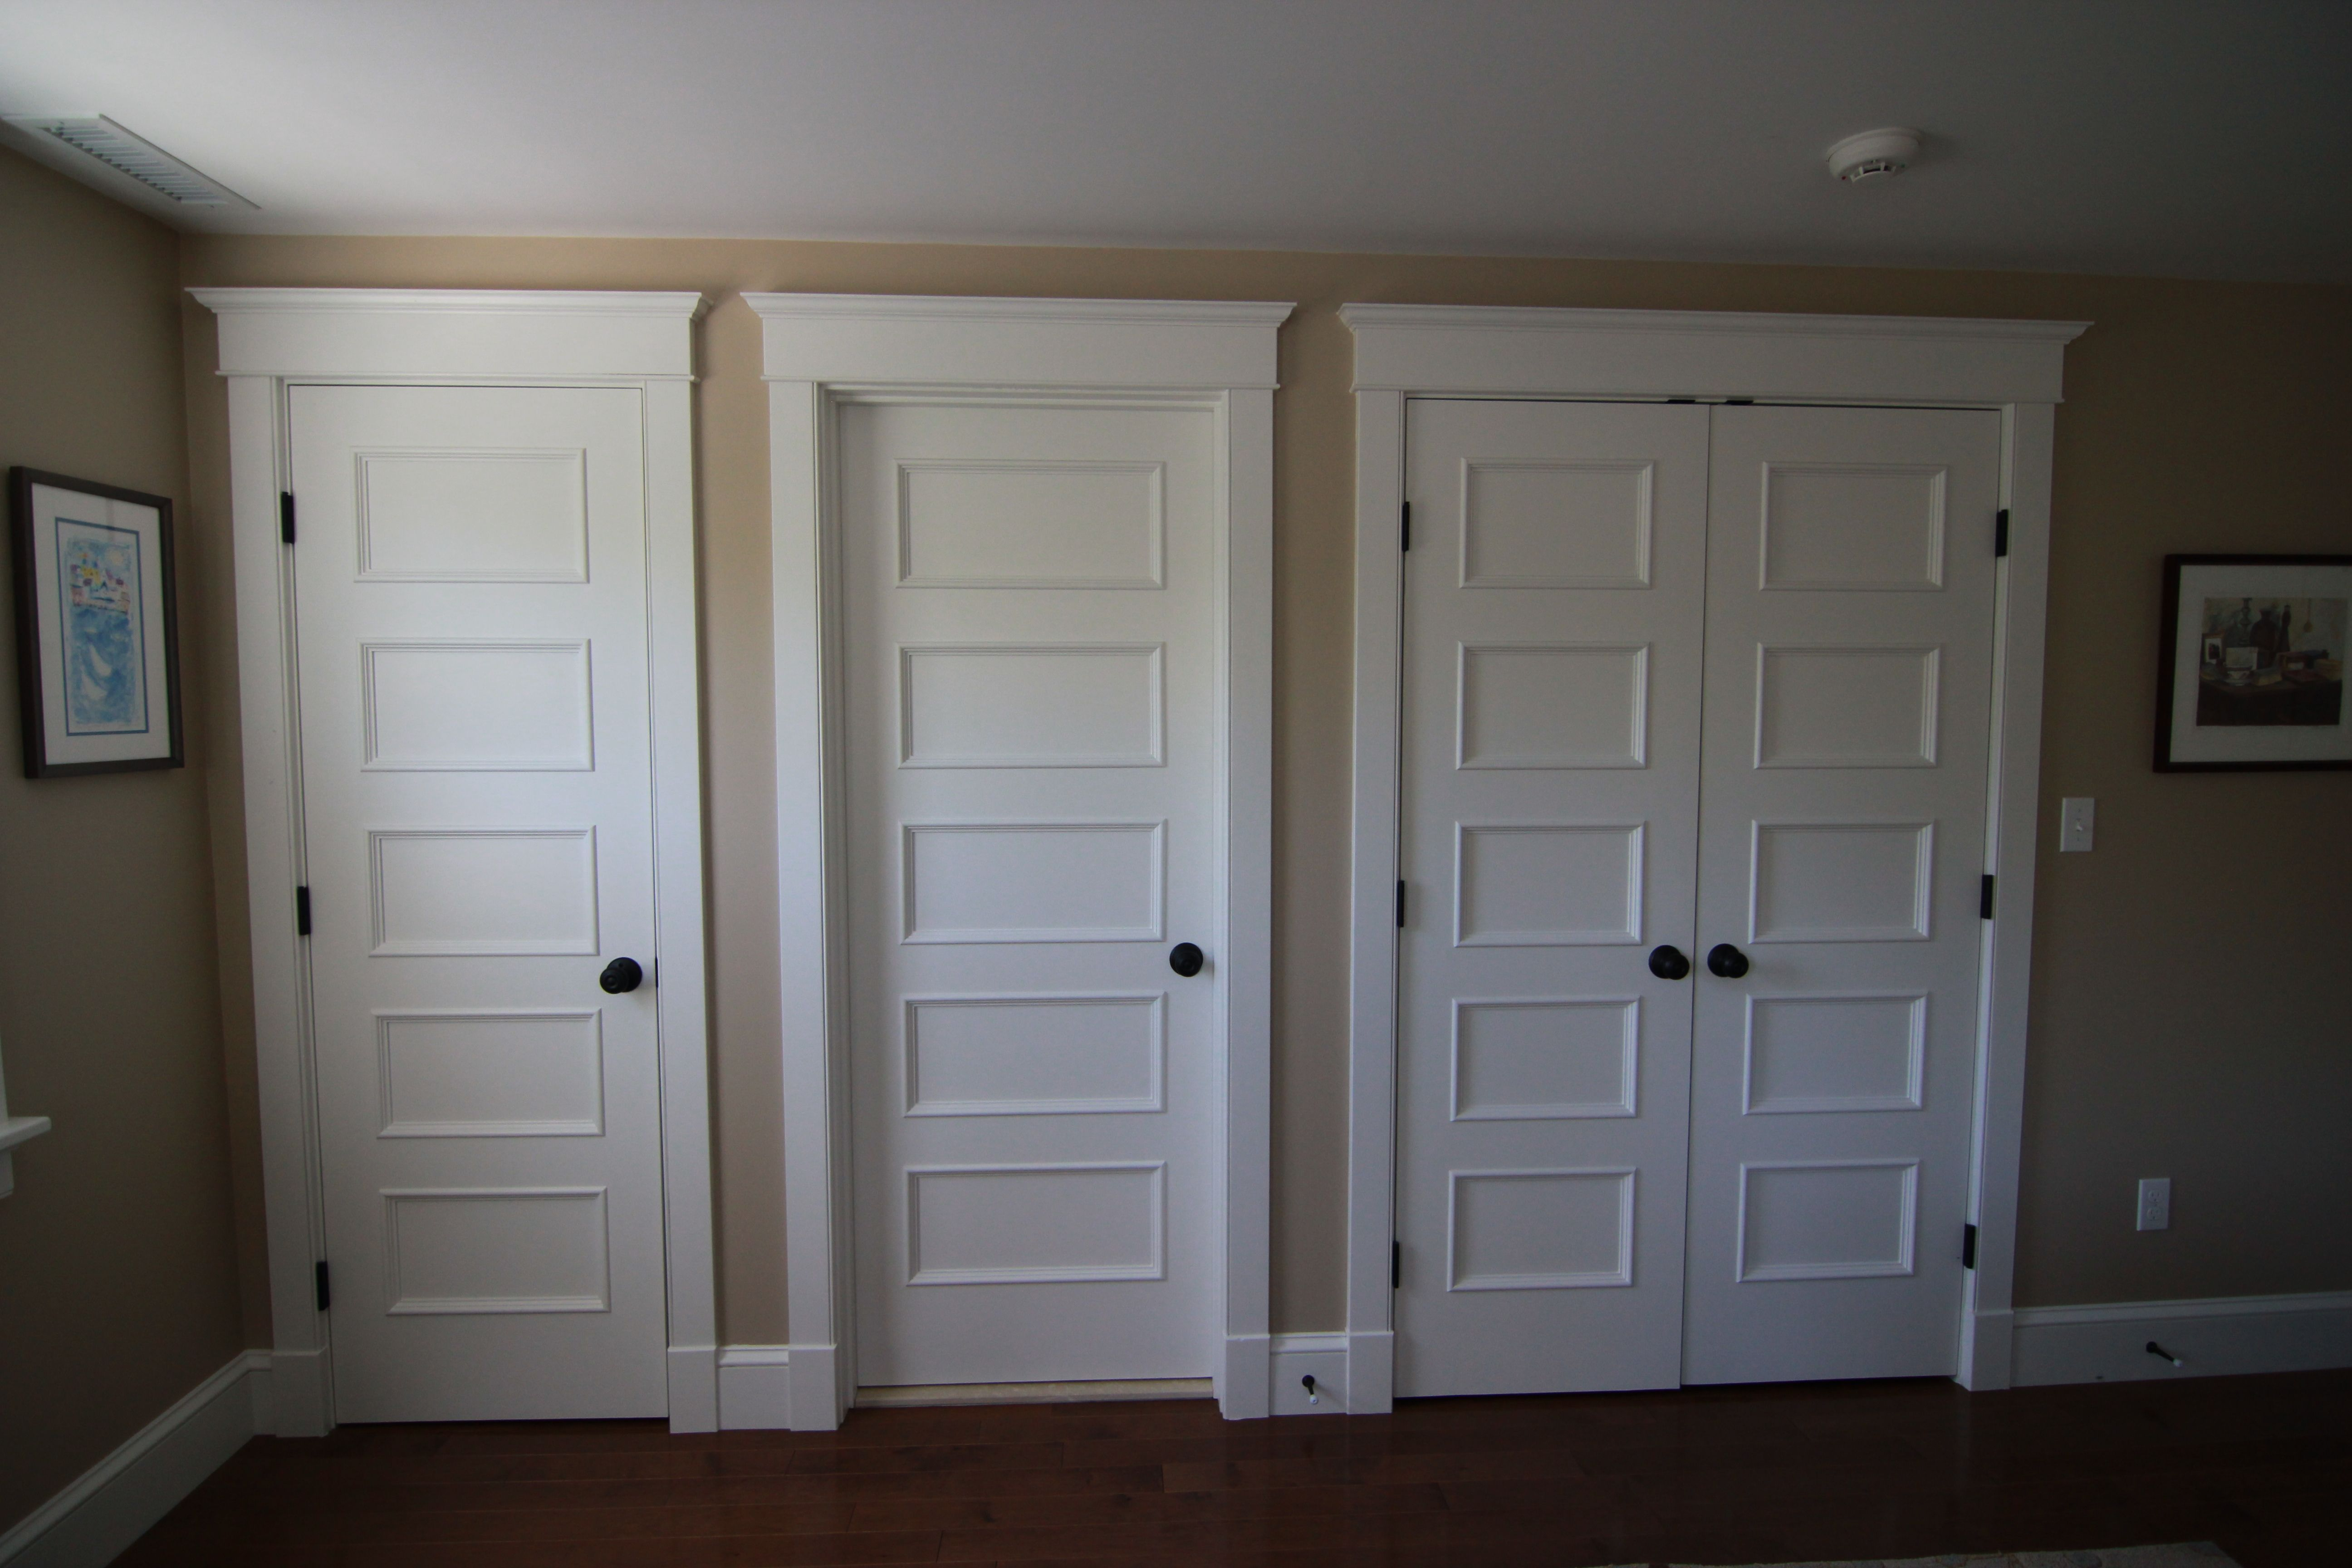 Closet Door Options Bedrooms Bedroom Industrial Chic Siding Closet